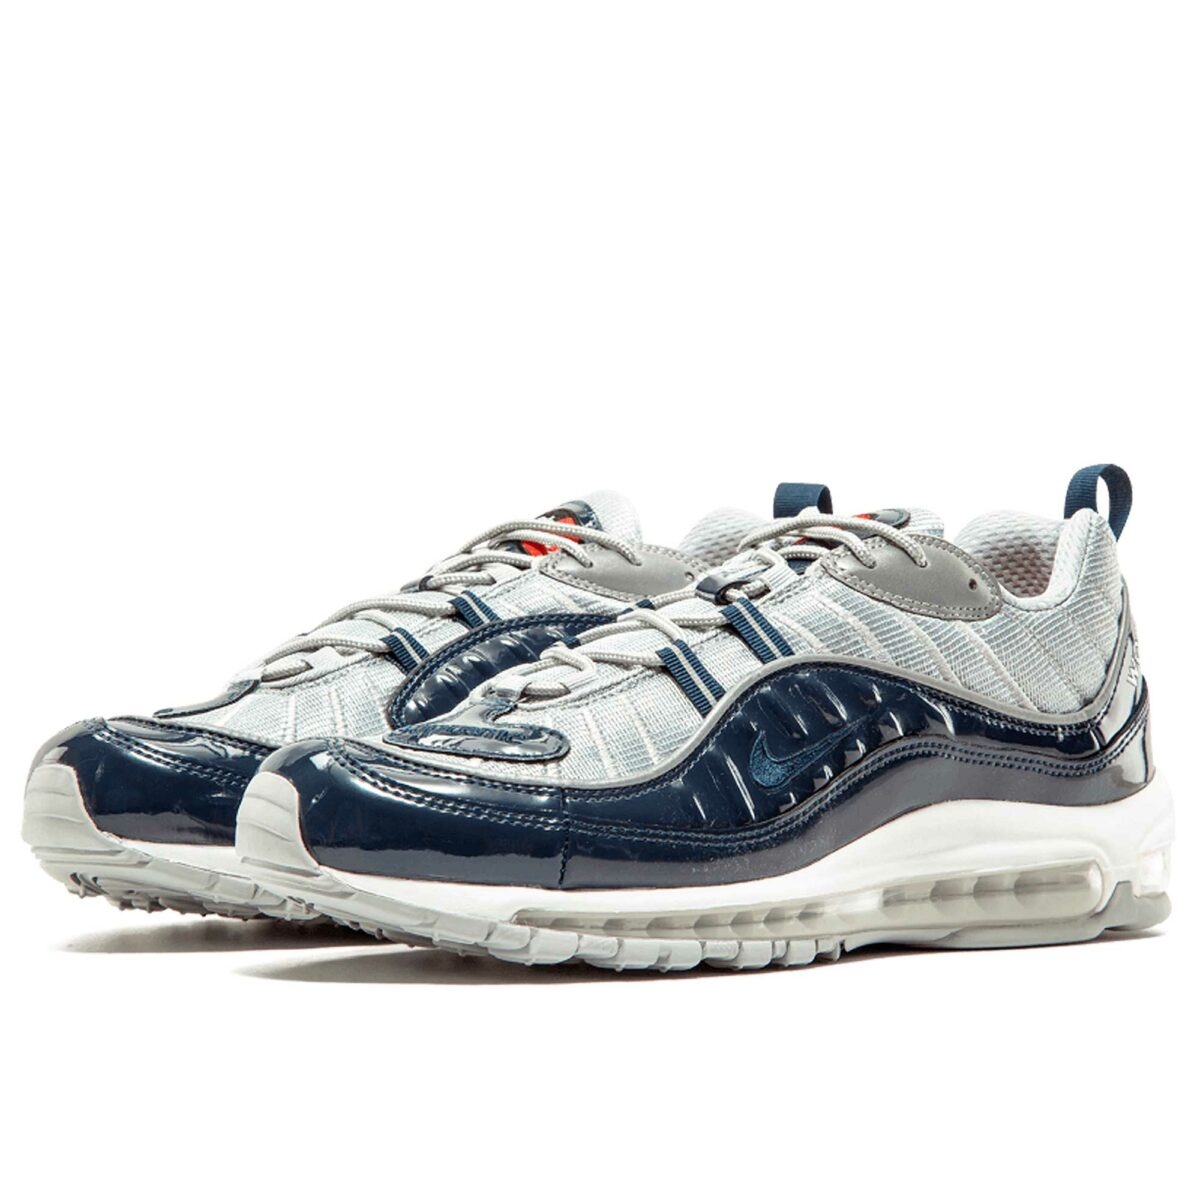 nike air max 98 supreme silver blue 844694_400 купить